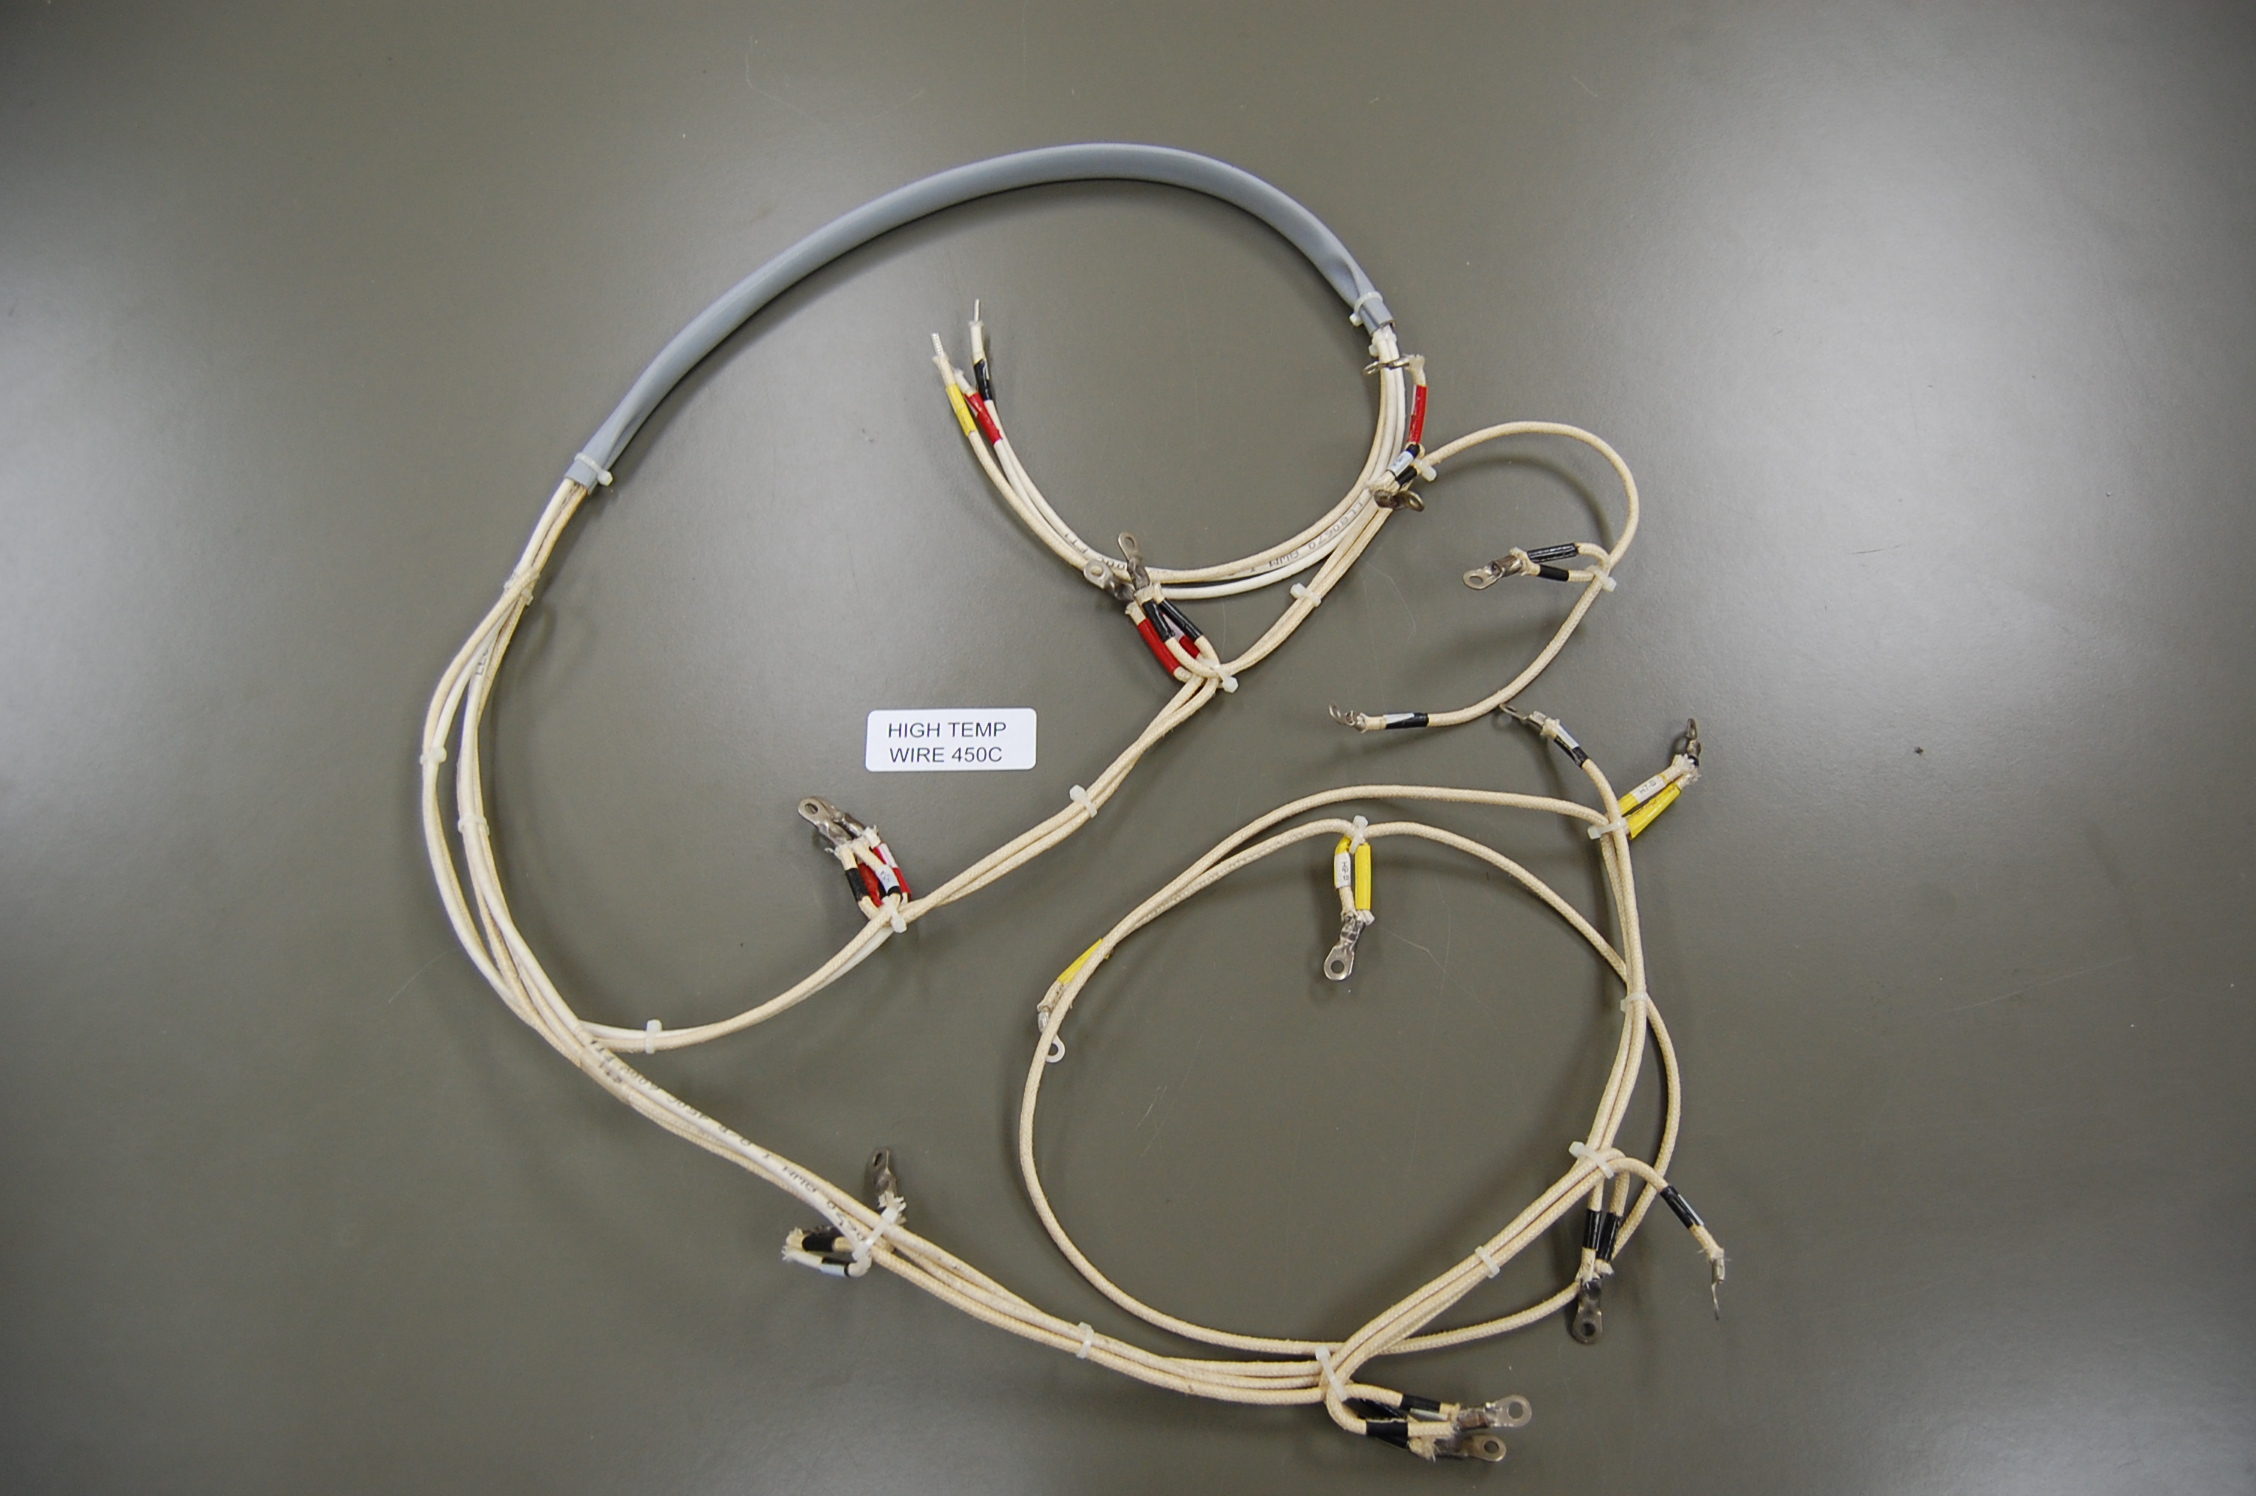 Capabilities Edm Inc High Temperature Wiring Harnesses Simple Complex Temp Up To 450c